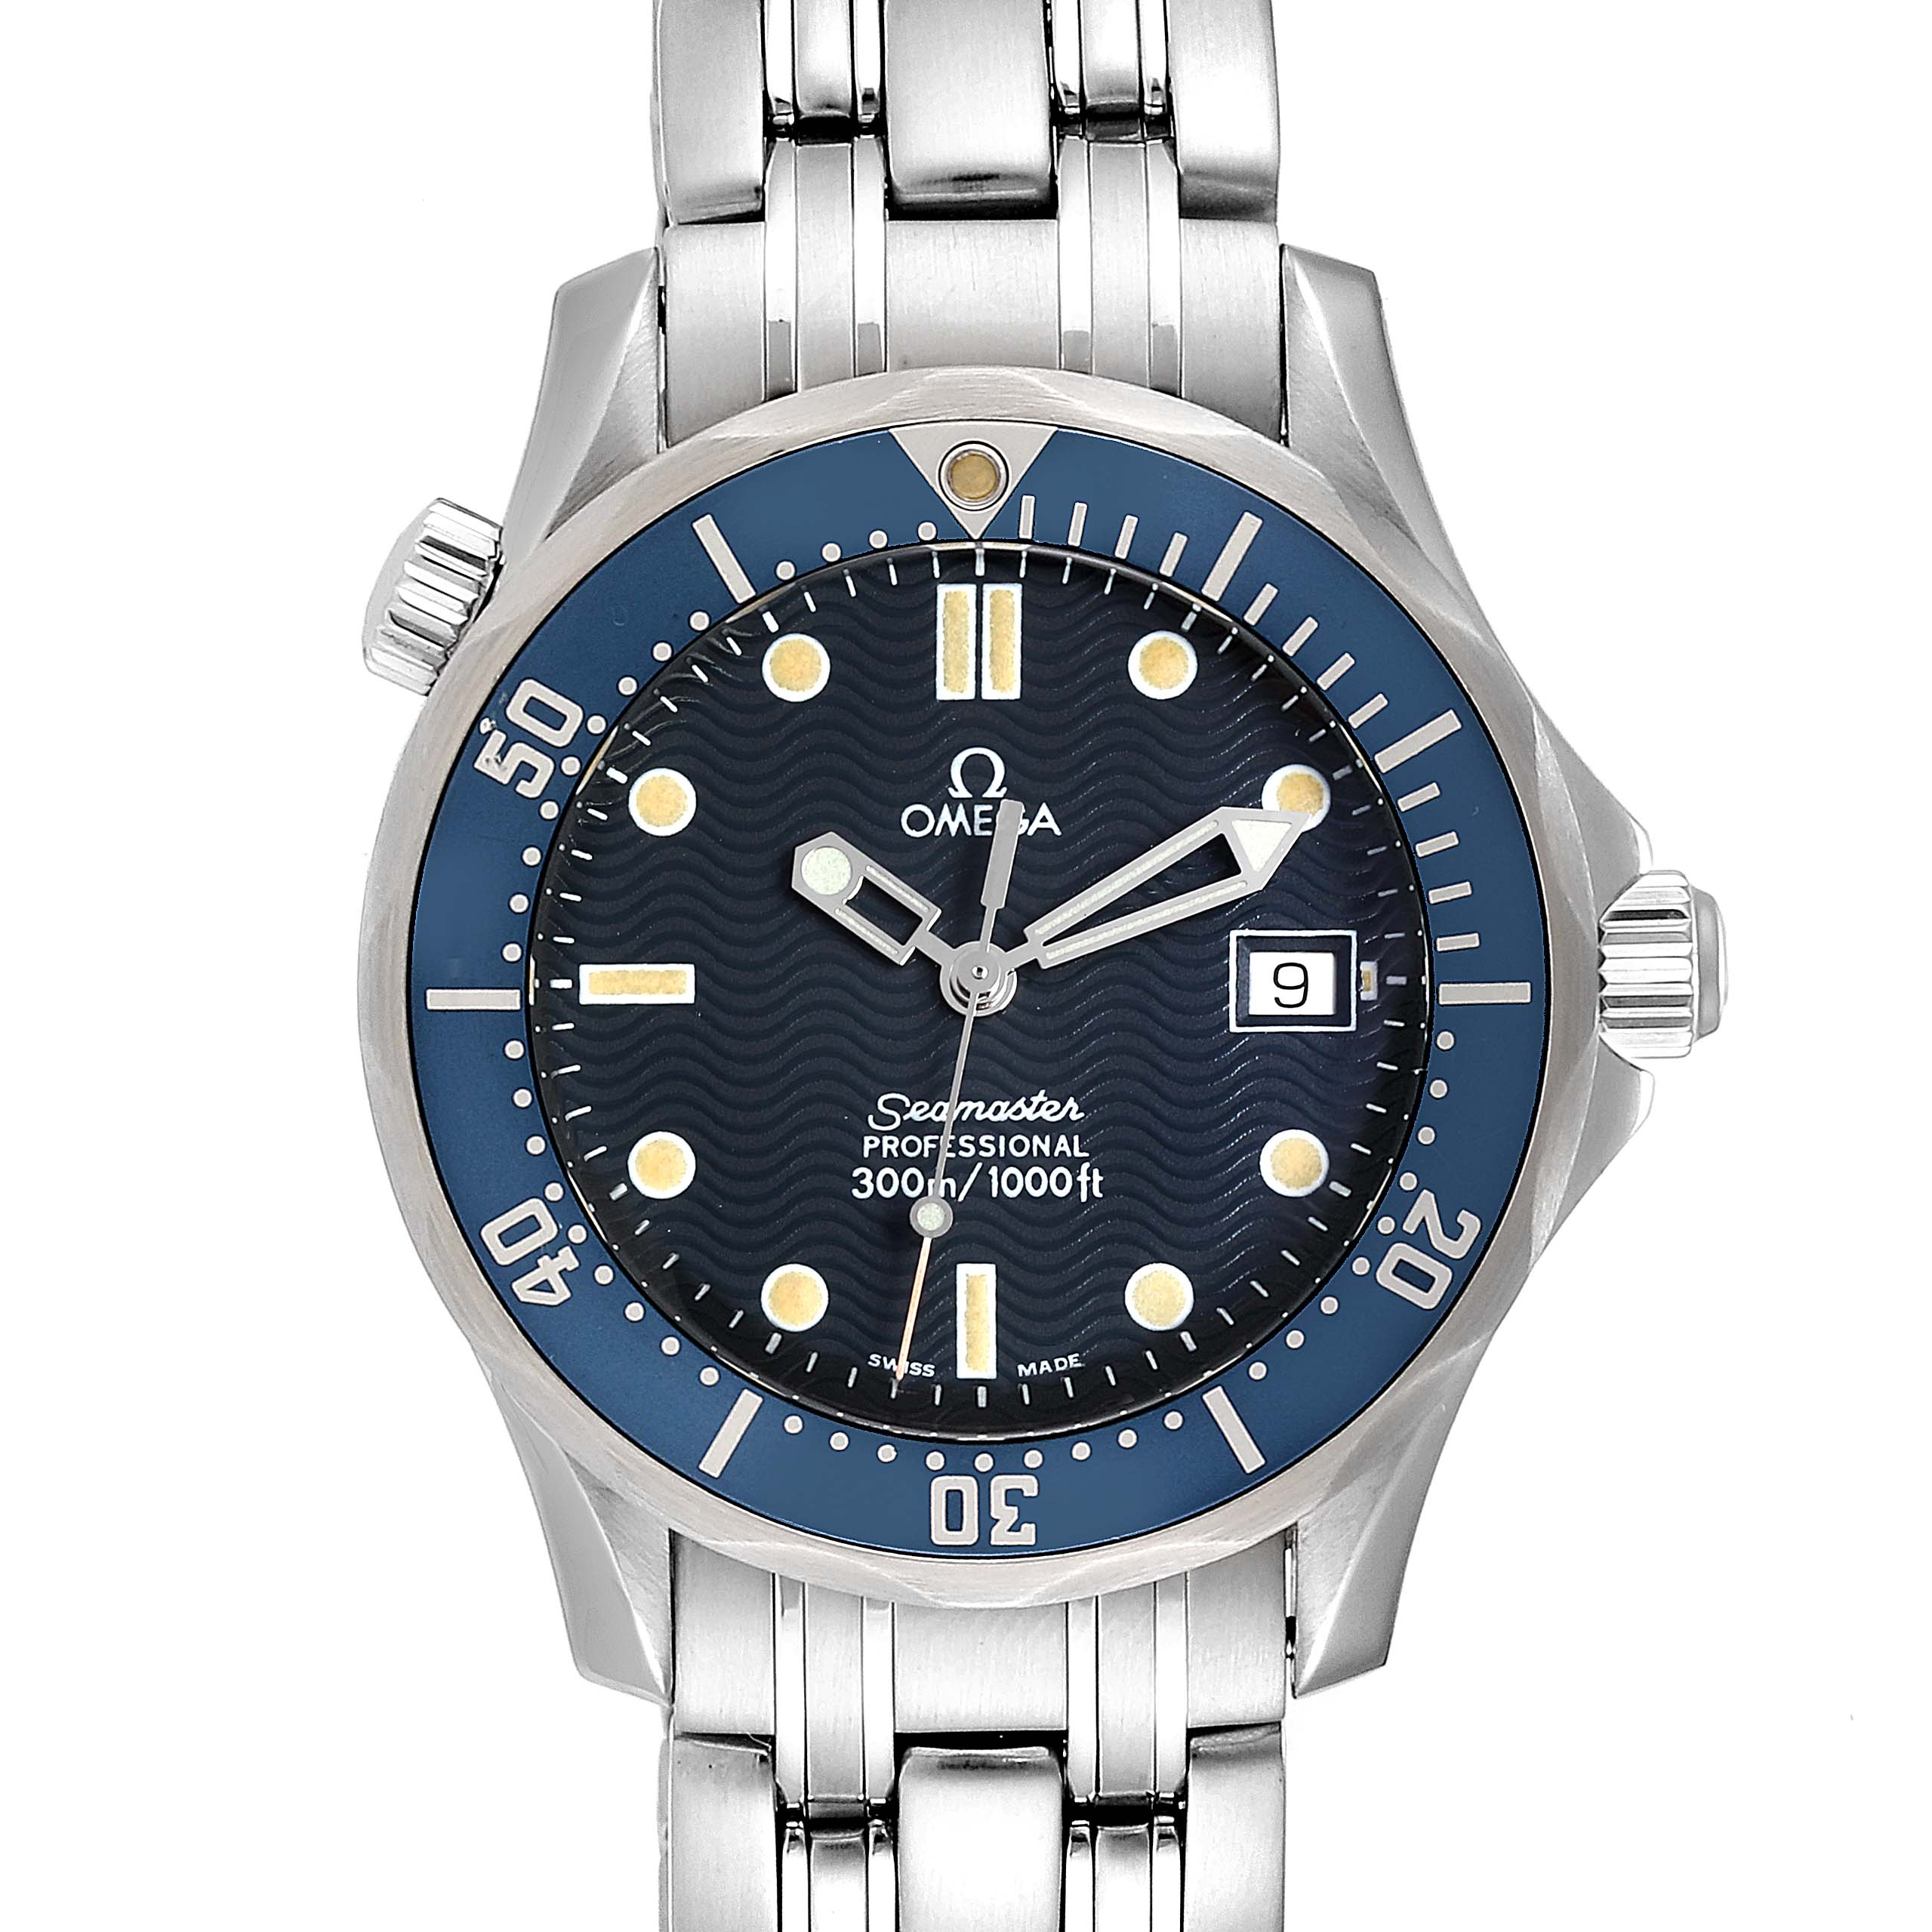 Omega Seamaster James Bond 36 Midsize Blue Wave Dial Watch 2561.80.00 SwissWatchExpo